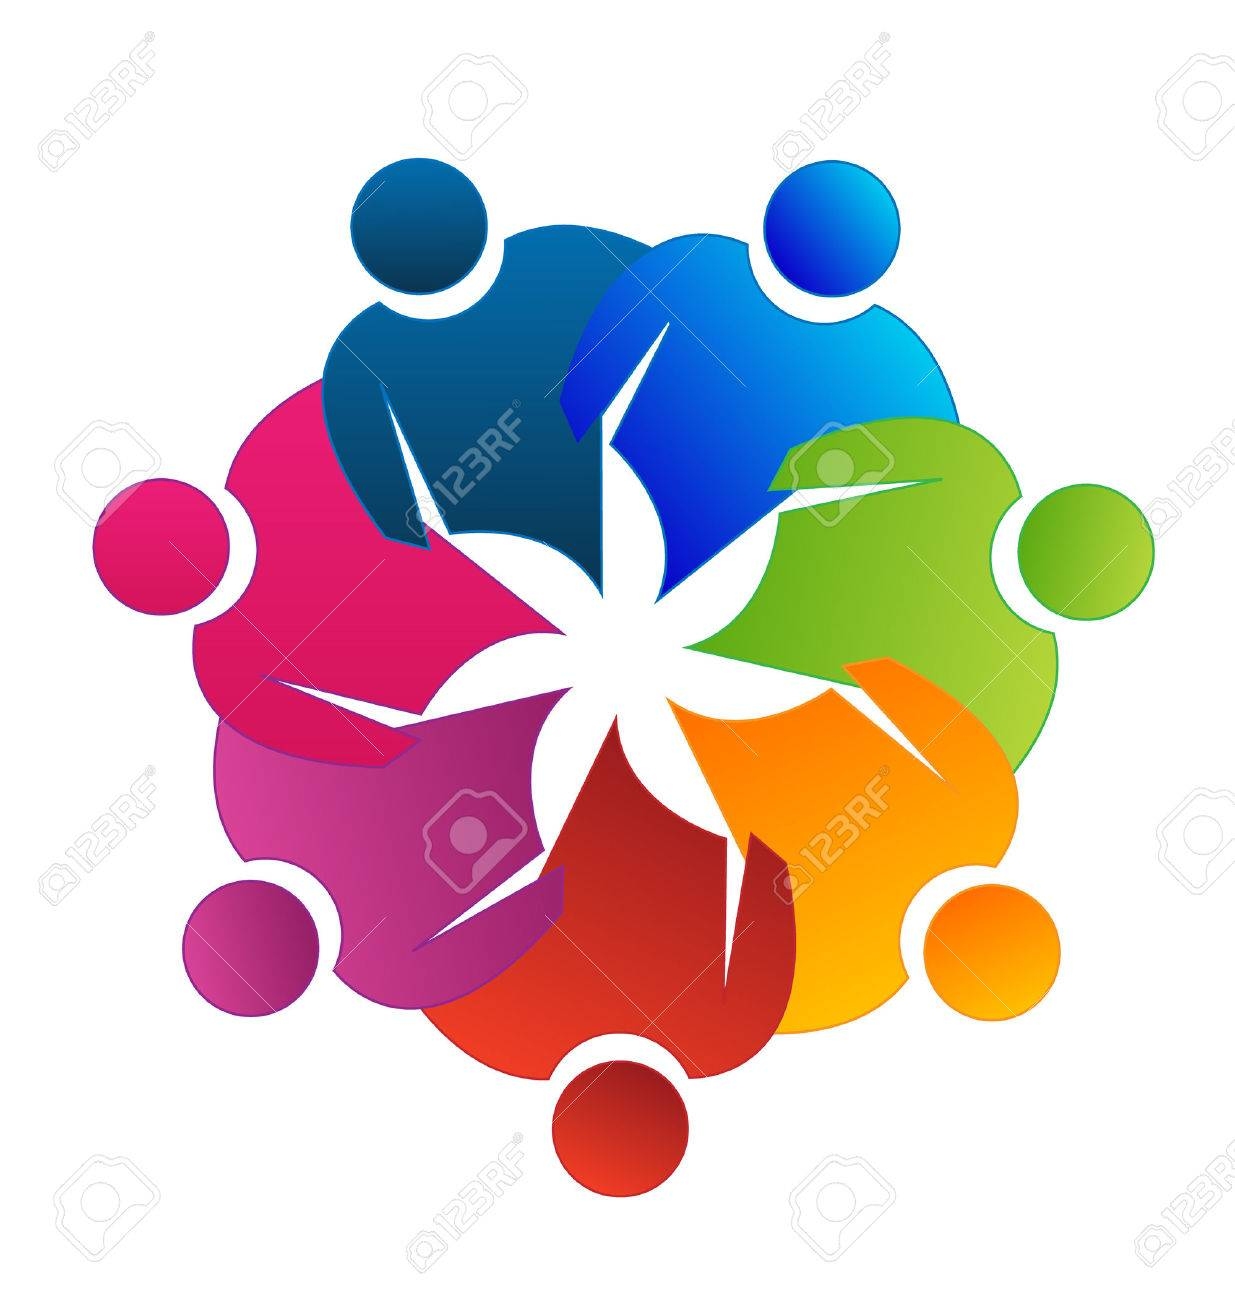 Teamwork Reunion Vector Icon Royalty Free Cliparts, Vectors, And Stock  Illustration. Image 28053412.